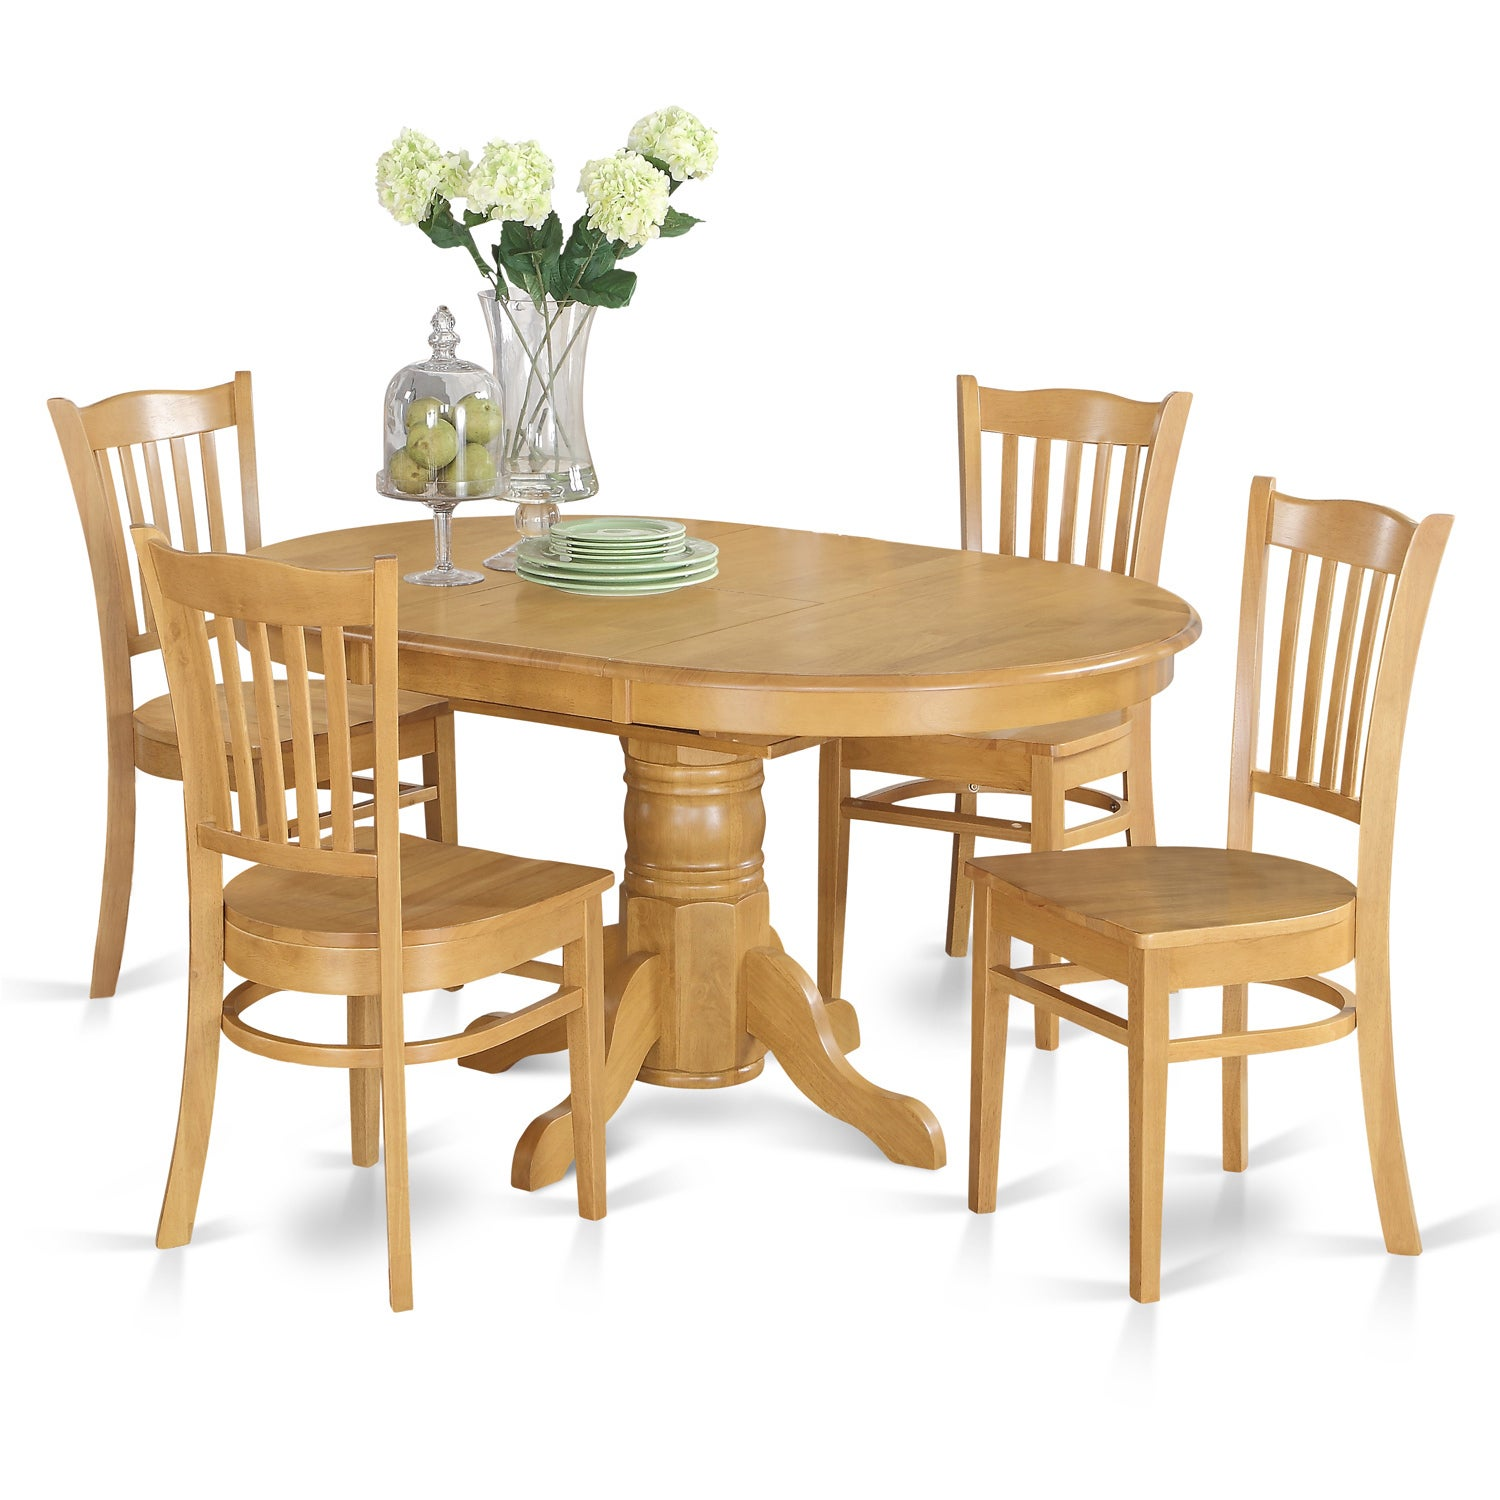 Terrific 5 Piece Dining Table Set For 4 Table With Leaf And 4 Dining Chairs Oak Creativecarmelina Interior Chair Design Creativecarmelinacom